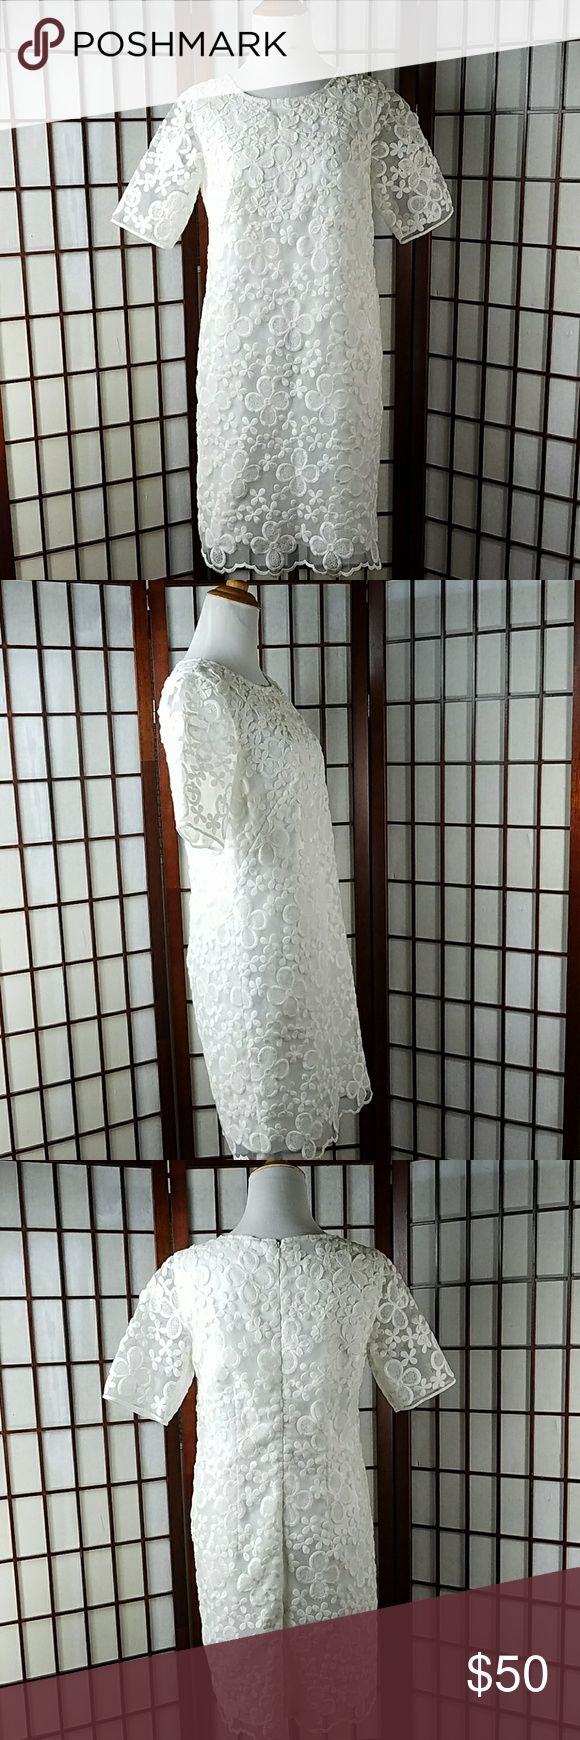 """ANN TAYLOR WHITE EMBROIDERED FLORAL Lined DRESS Pre-owned gently worn  ANN TAYLOR SIZE 2 Sheath Dress style   Embroidered floral pattern Short sleeve  Lined  White color Hidden zip back for closure Made of polyester and cotton  Measurement Approximate Pit to pit 17"""" Shoulder to hem 36"""" Waist 34"""" Ann Taylor Dresses"""